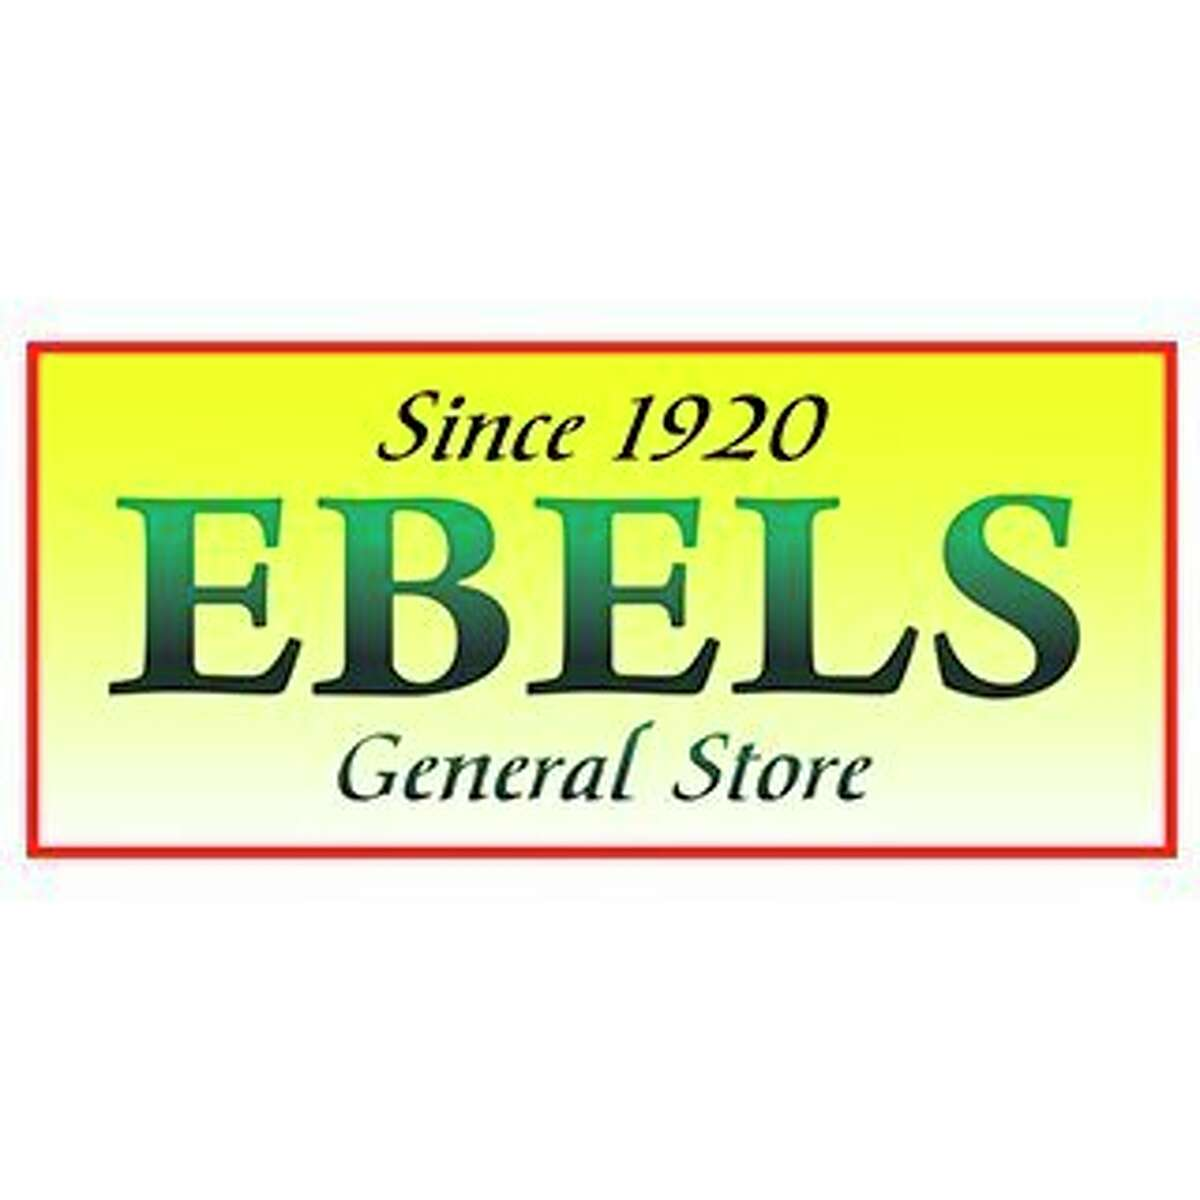 Ebels General Storeco-ownerBob Ebels said he hopes to open shop in Reed Citythis year incelebration of Ebels General Store's 100th year in Falmouth; however, opening in 2021 is still a possibility. (Courtesy photo)